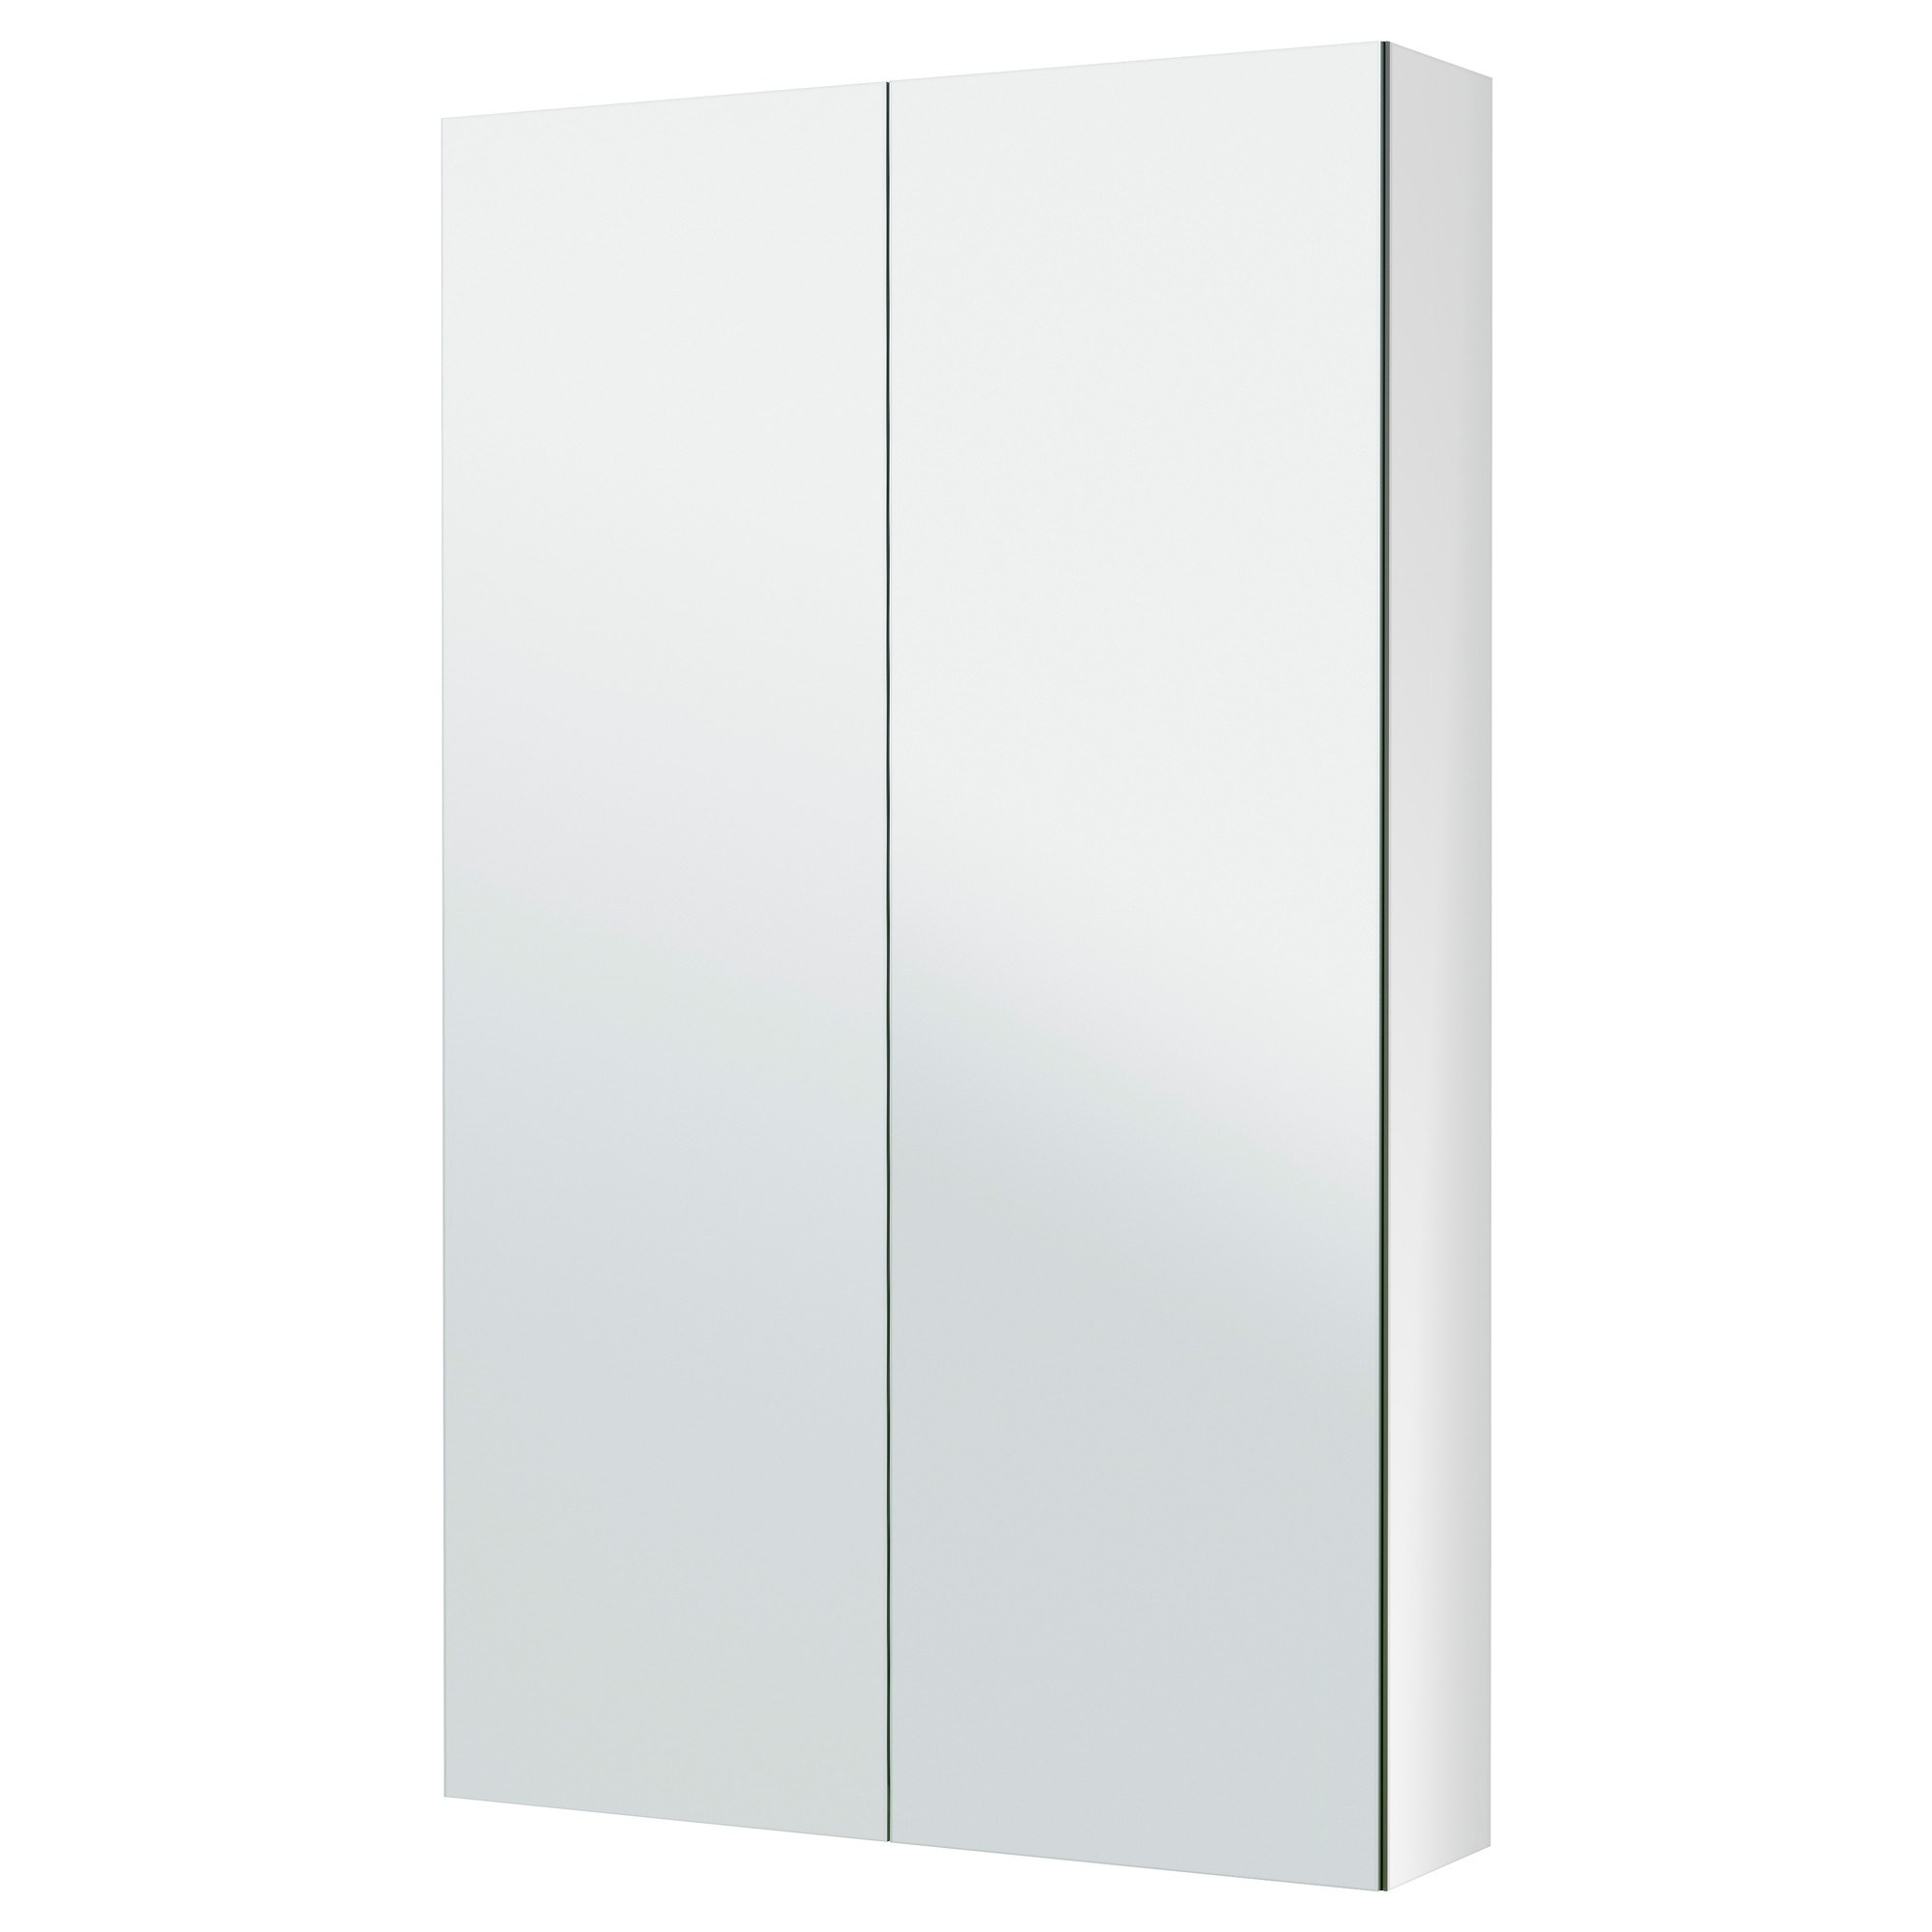 Slim Bathroom Storage Argos